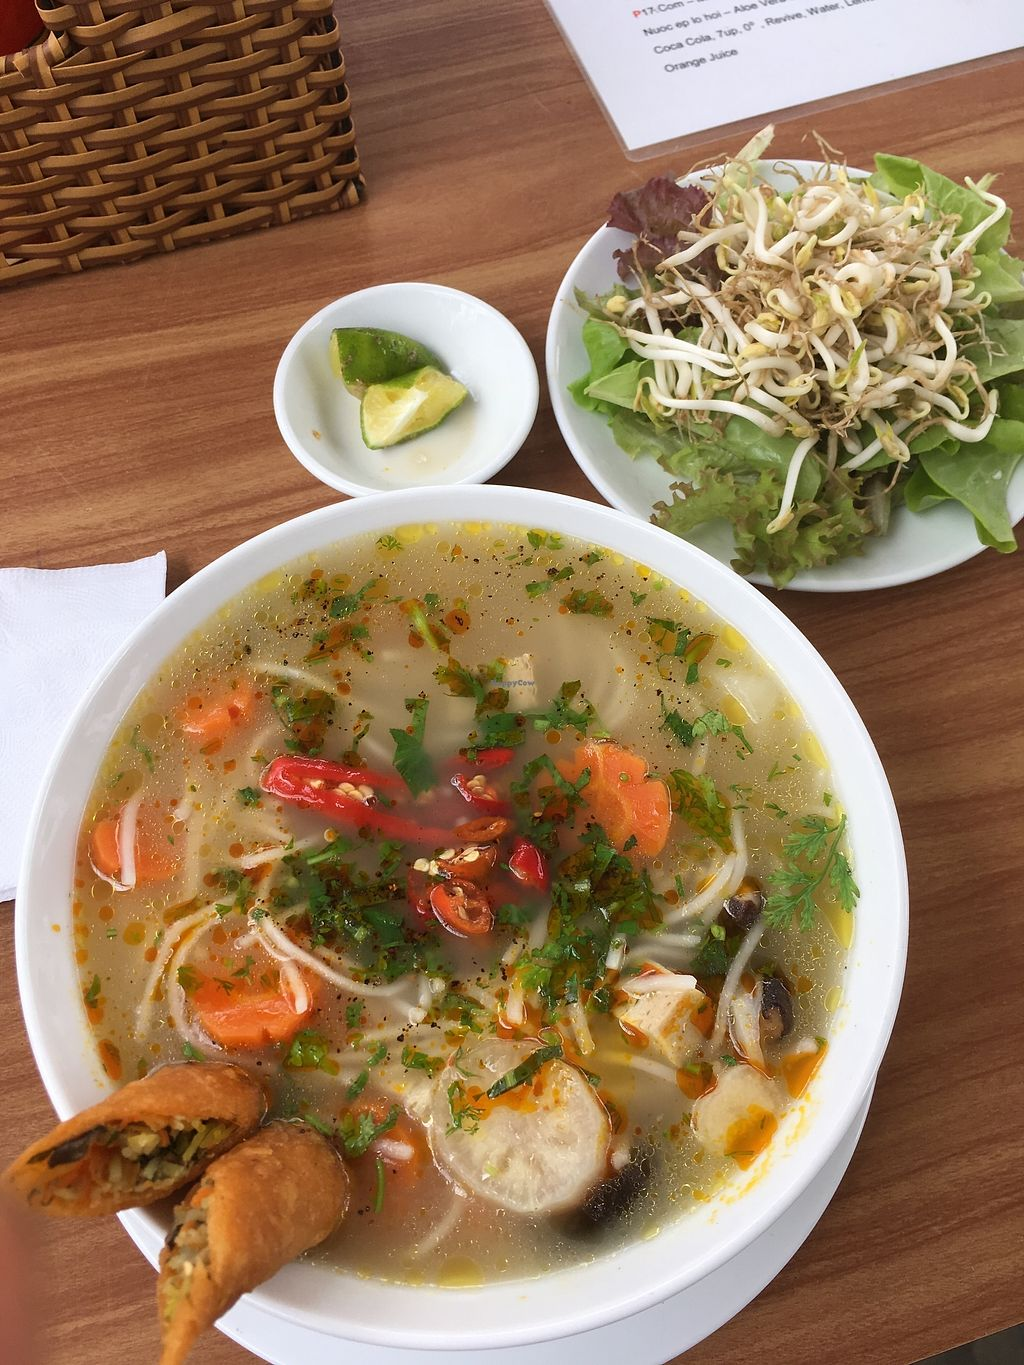 """Photo of Chay  by <a href=""""/members/profile/BellaAzi"""">BellaAzi</a> <br/>Soup with rice noodle nd spring rolls - paradise in my mouth <br/> March 1, 2018  - <a href='/contact/abuse/image/113006/365257'>Report</a>"""